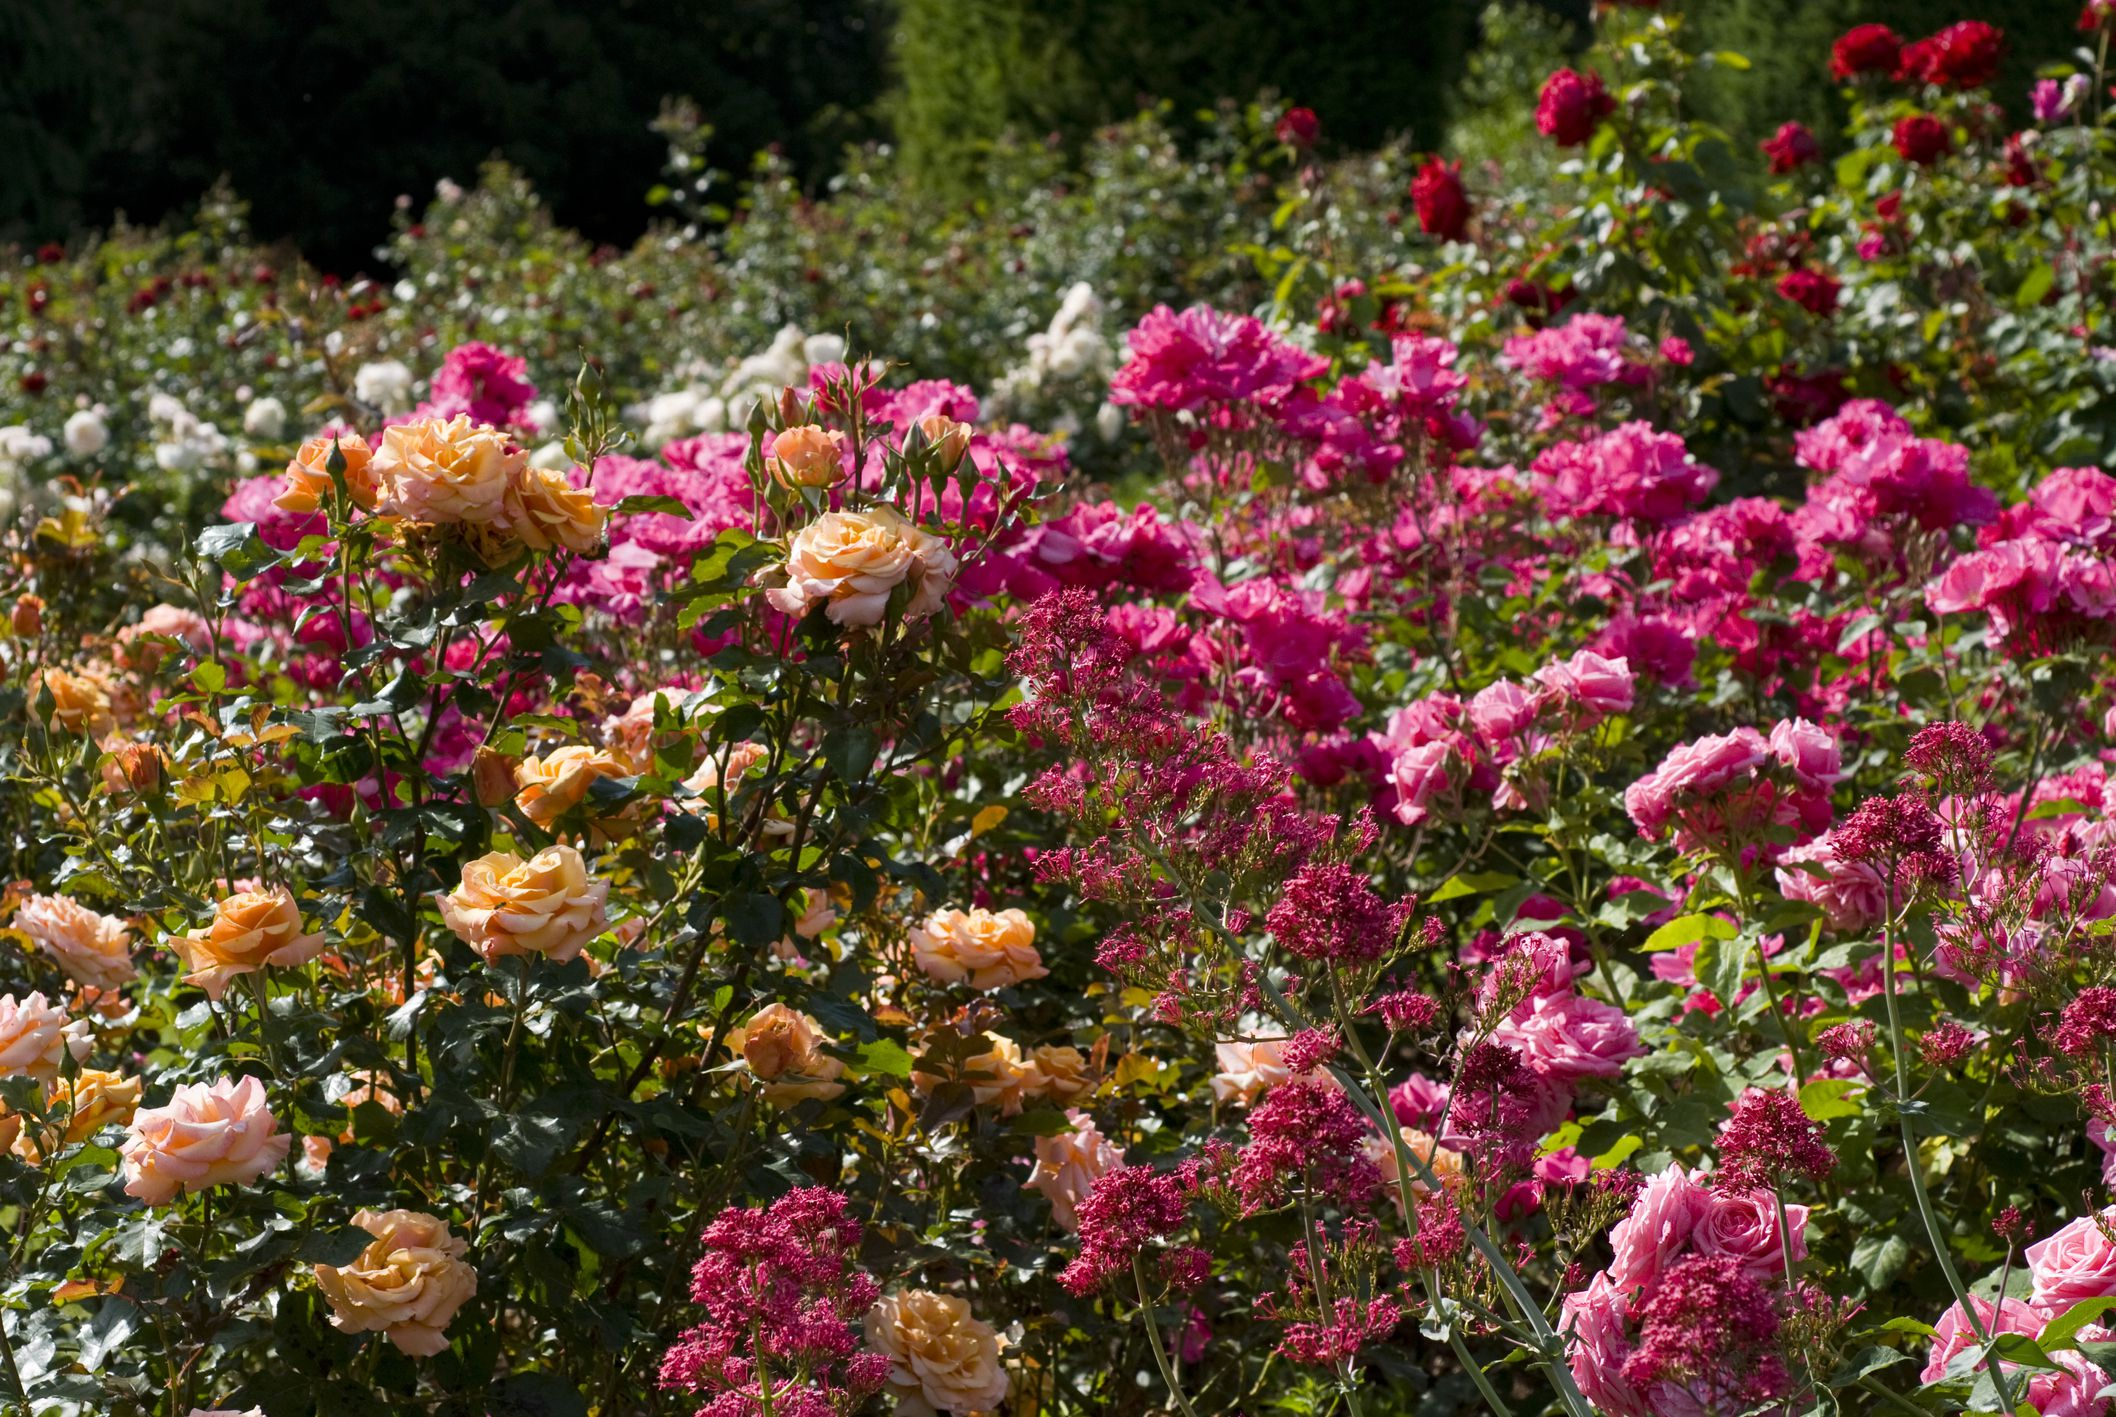 Roses In Garden: 15 Floribunda Roses For The Flower Garden